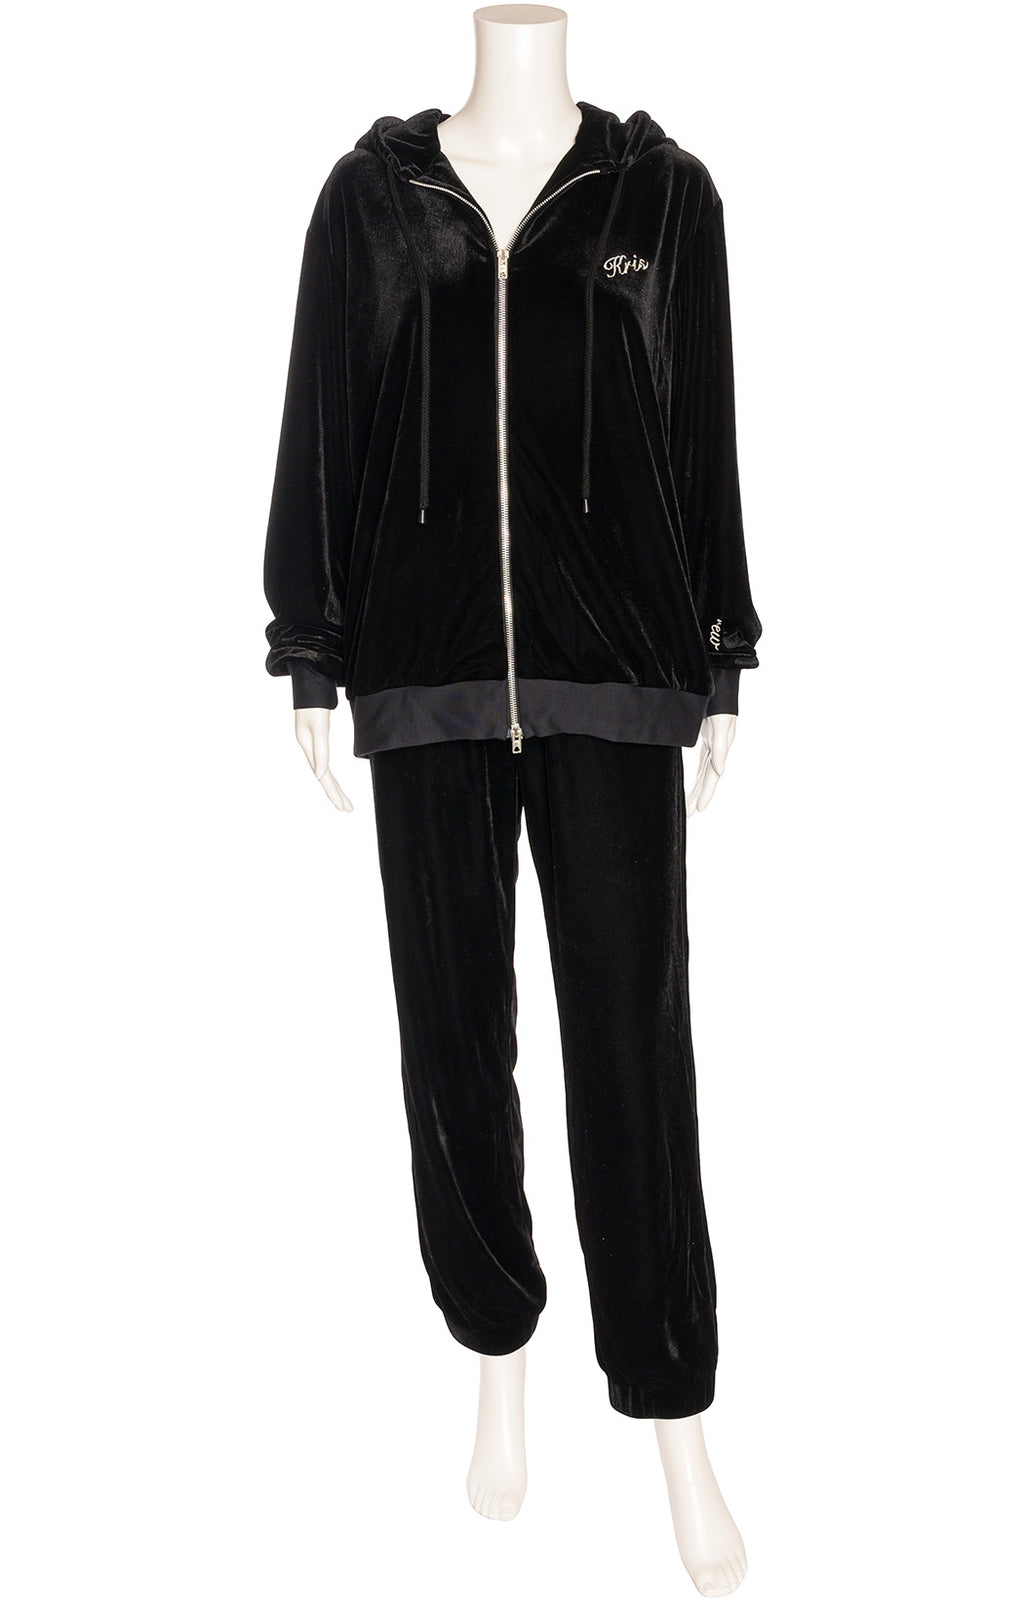 Front view of DANIELLE GUIZIO with tags  Track suit Size: no size tags fits like small-medium